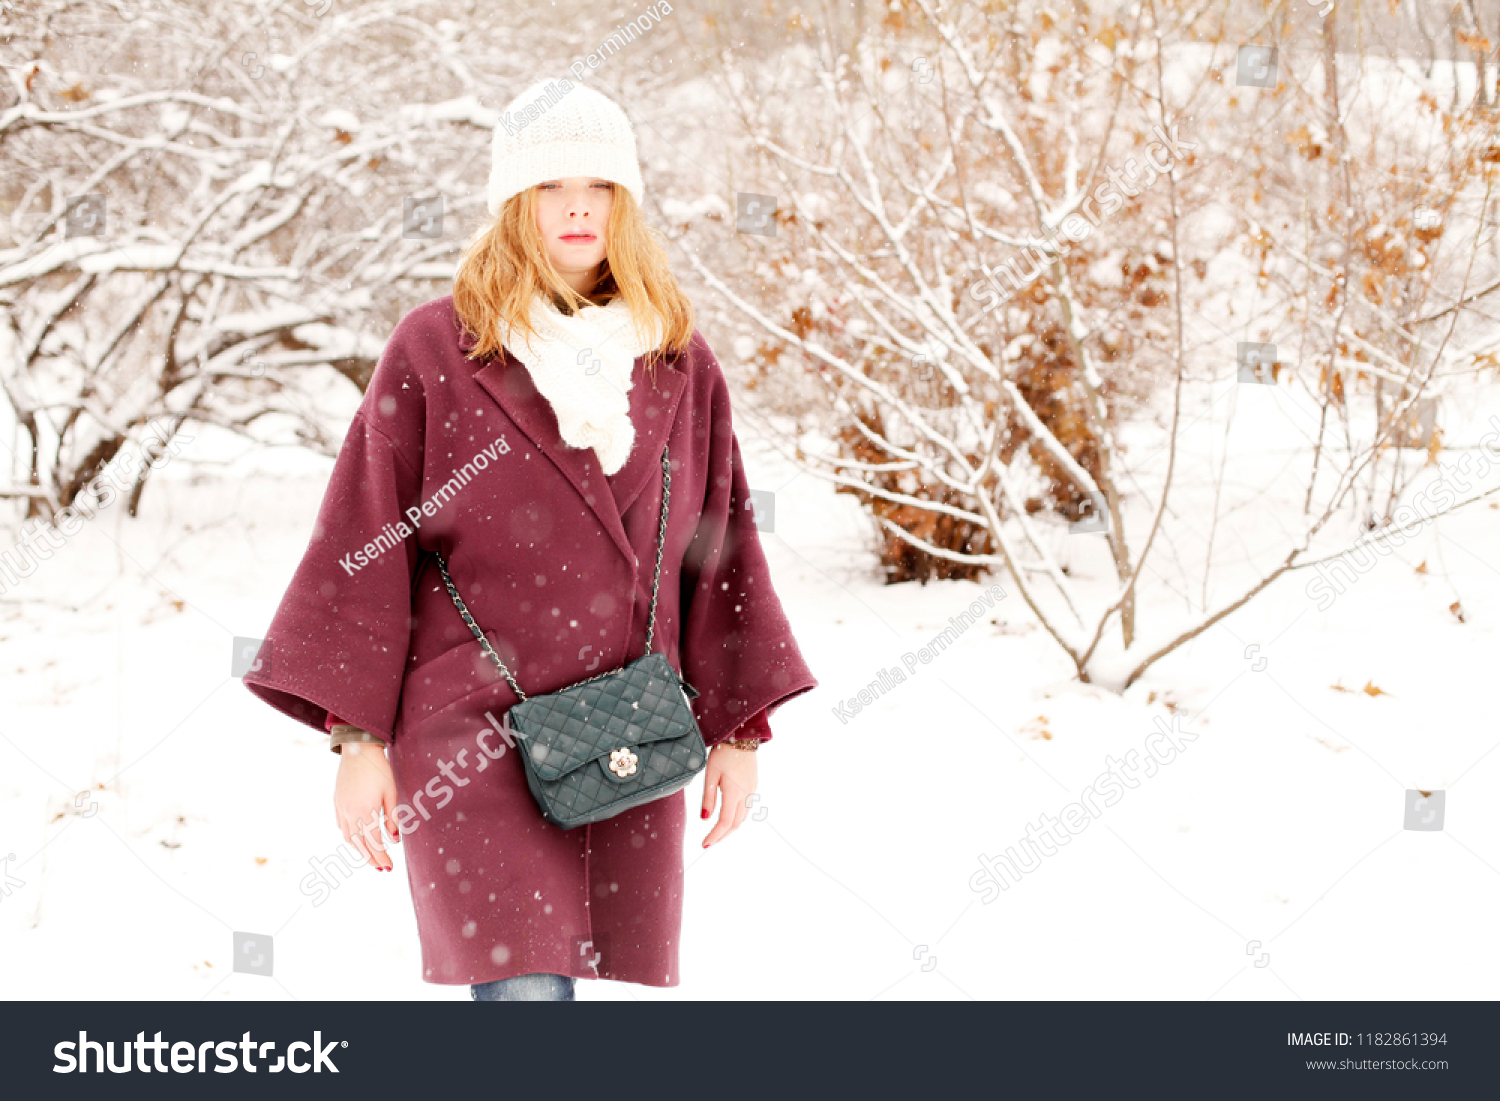 00a8c4a3a3f051 Attractive young woman wearing purple warm coat, white wool knitted cap and  scarf in cold